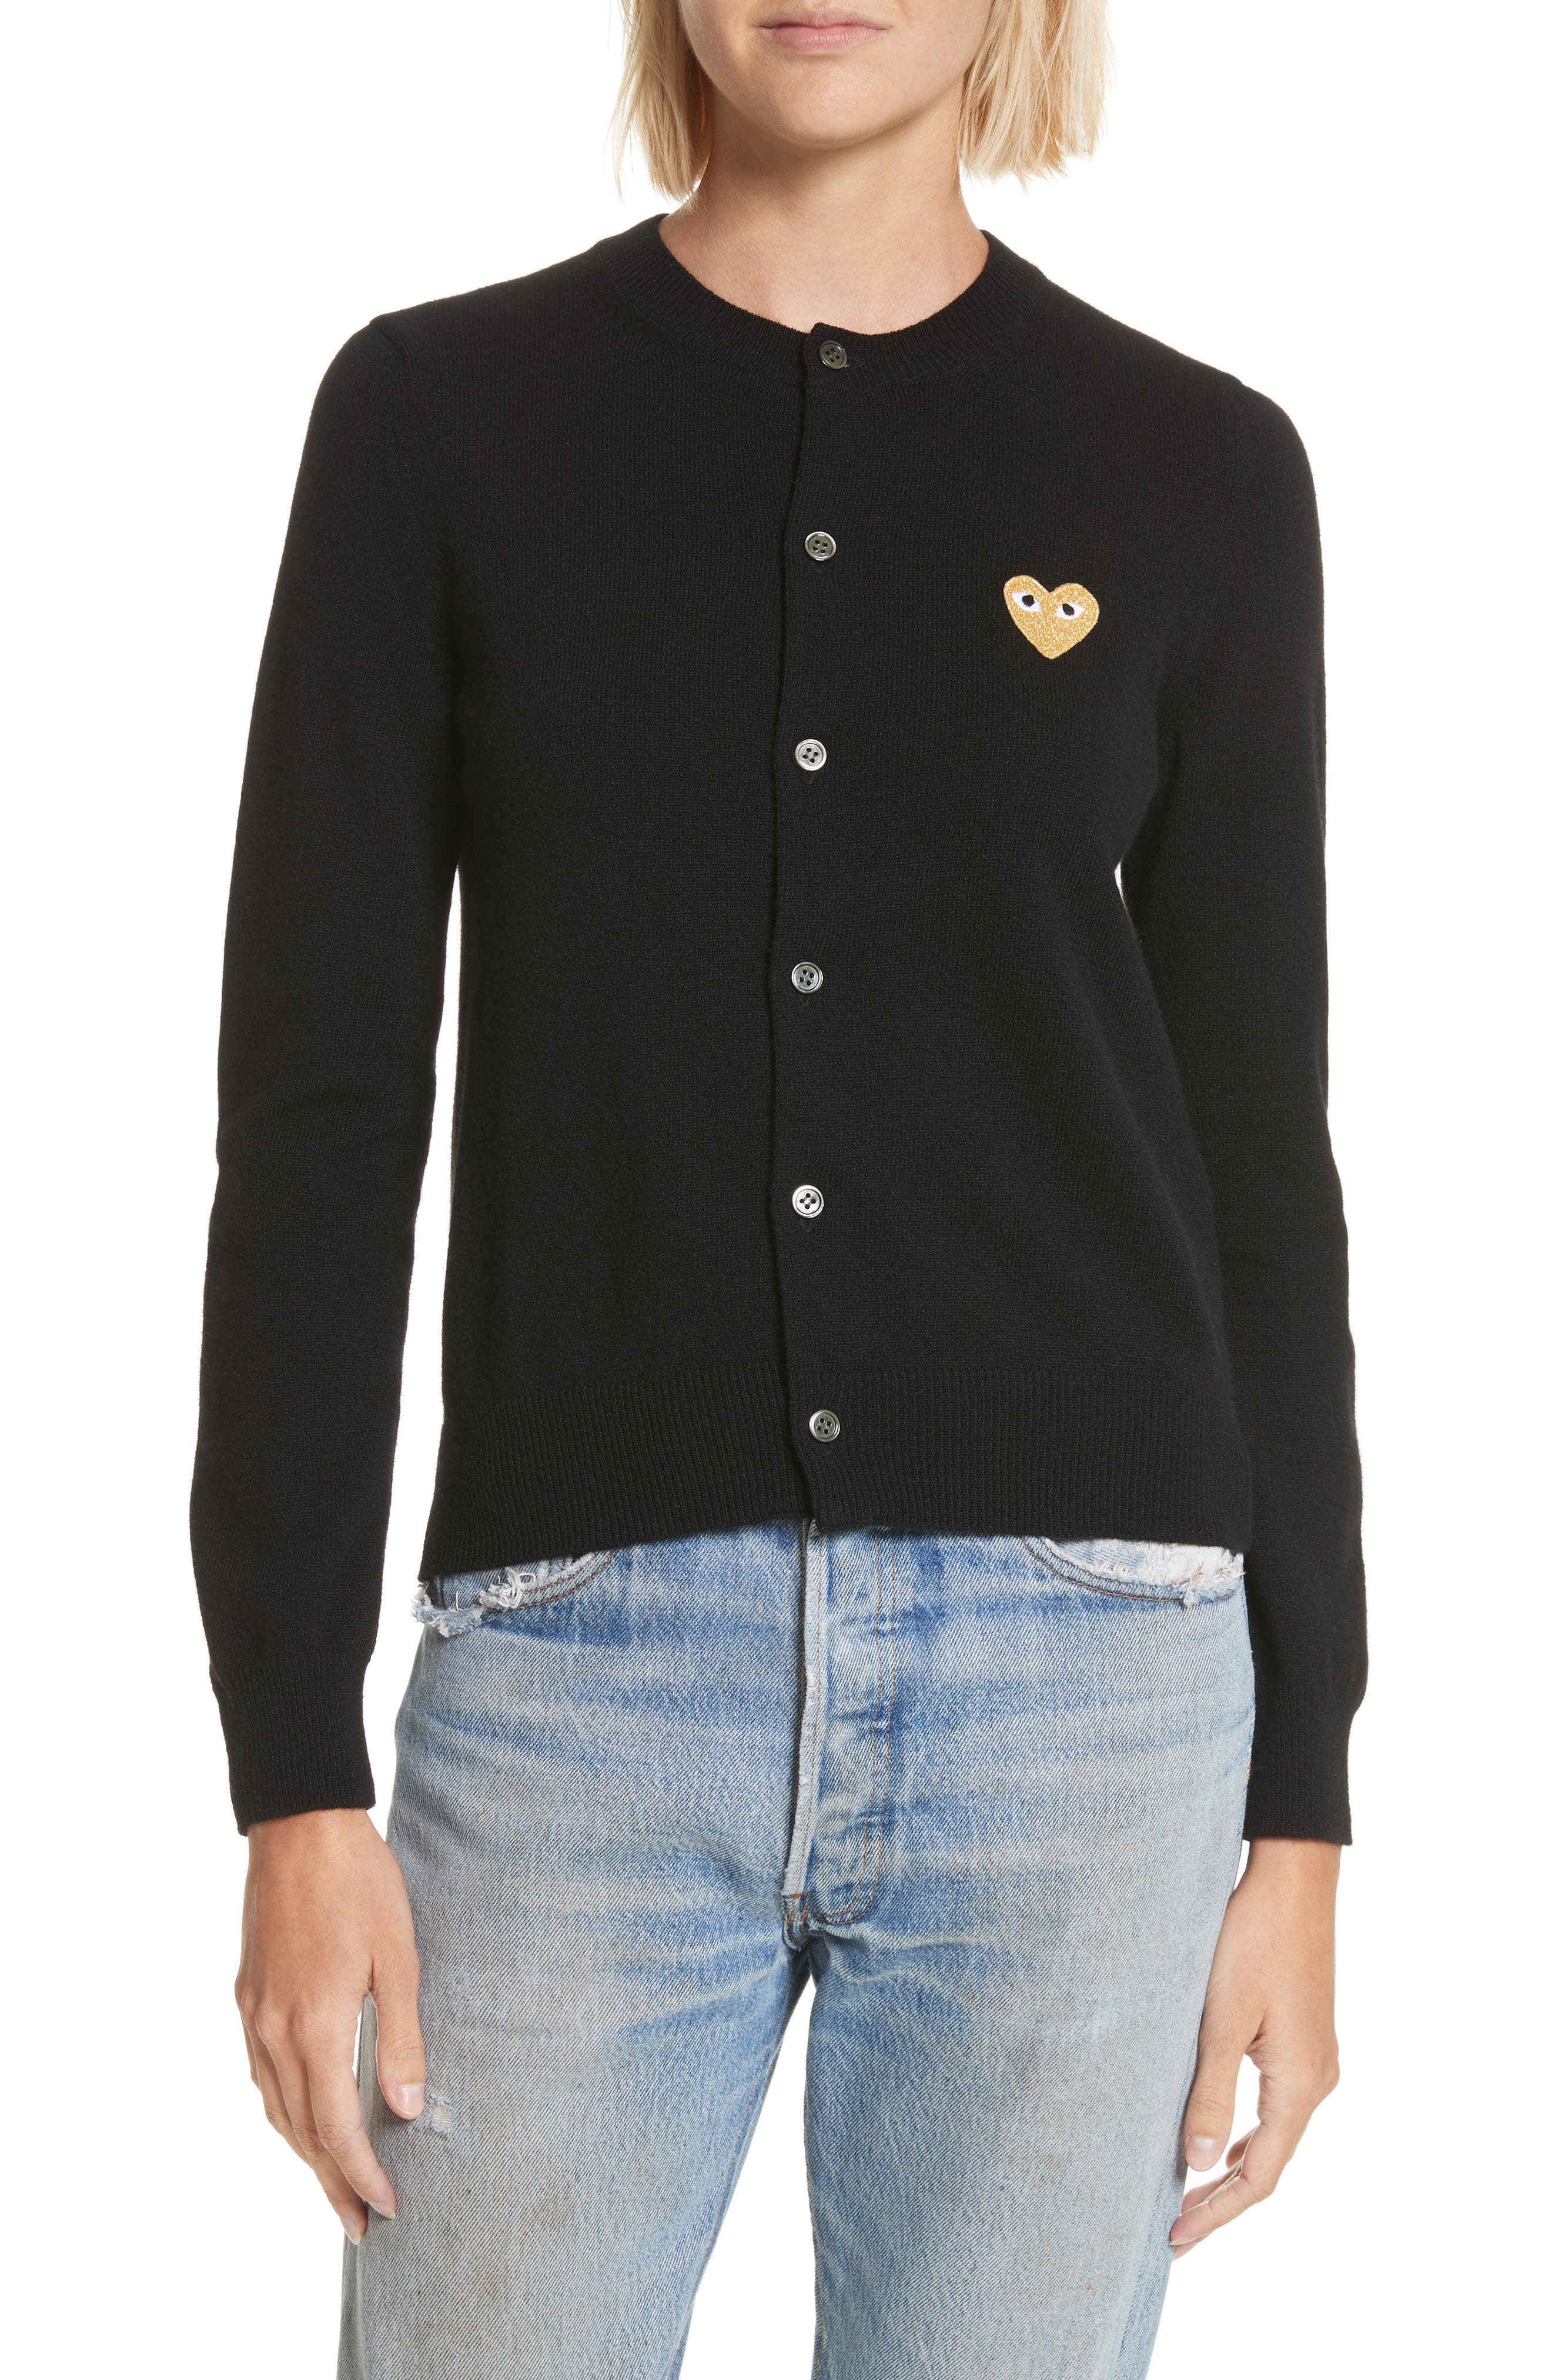 PLAY Gold Heart Patch Wool Cardigan,                             Main thumbnail 1, color,